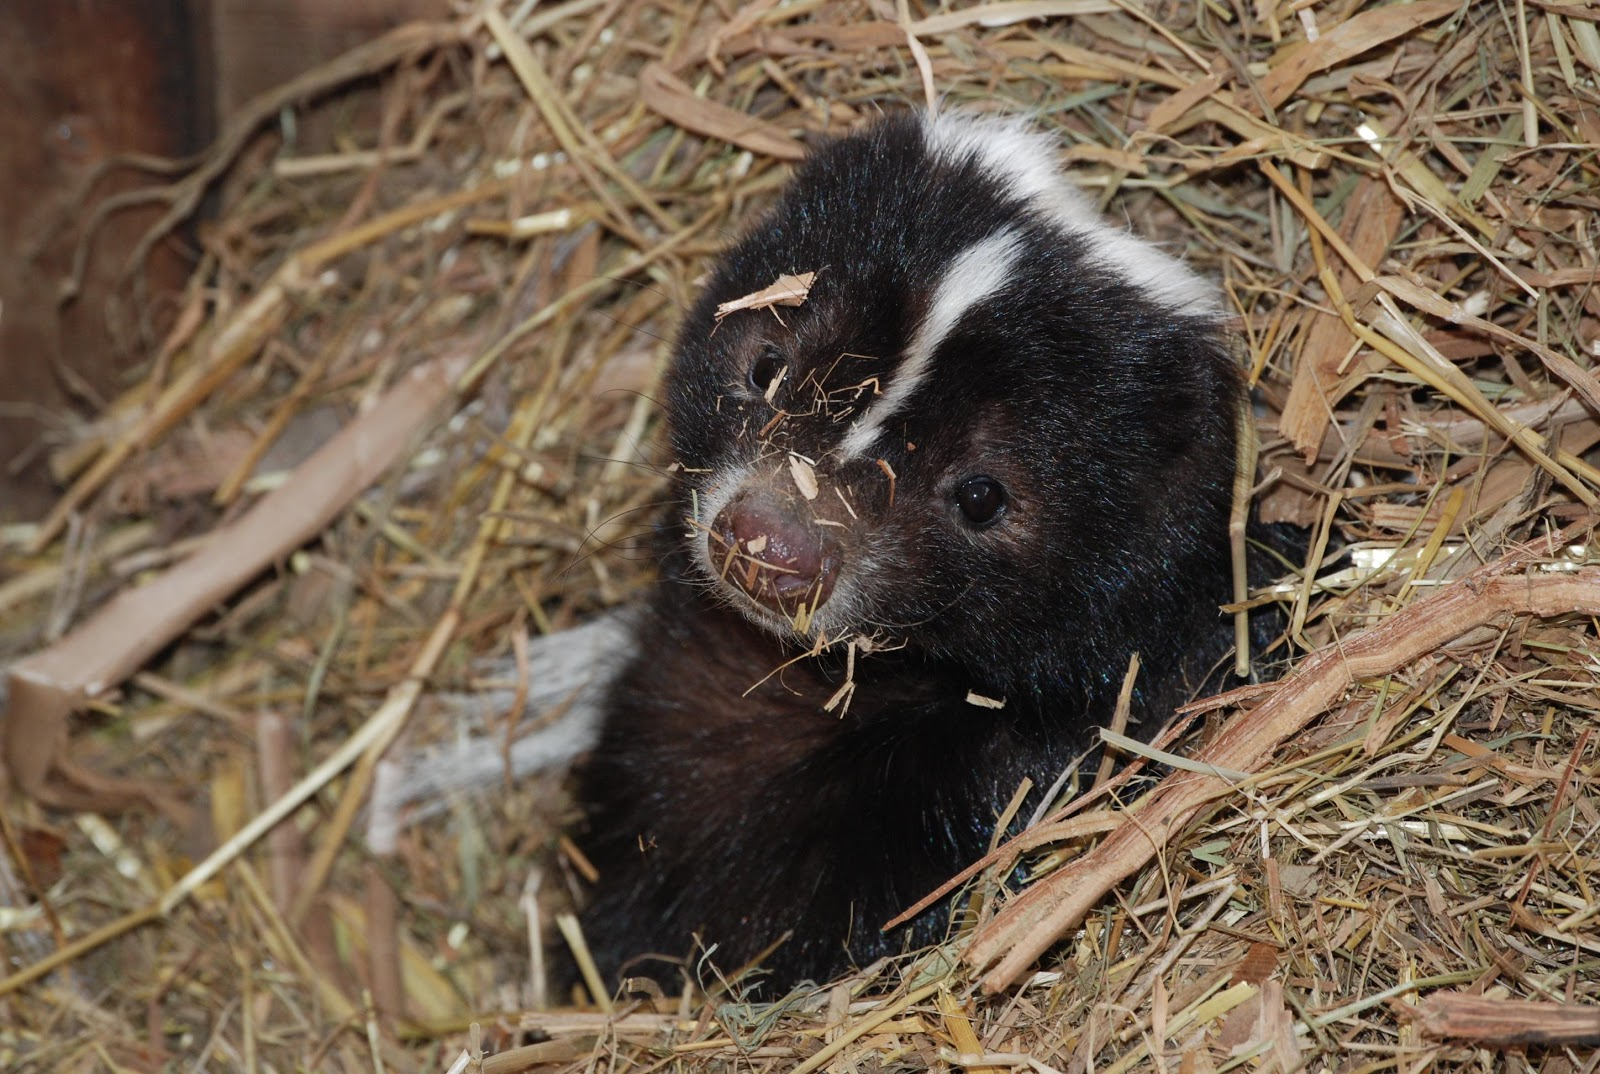 Striped skunk with wide fanned tail